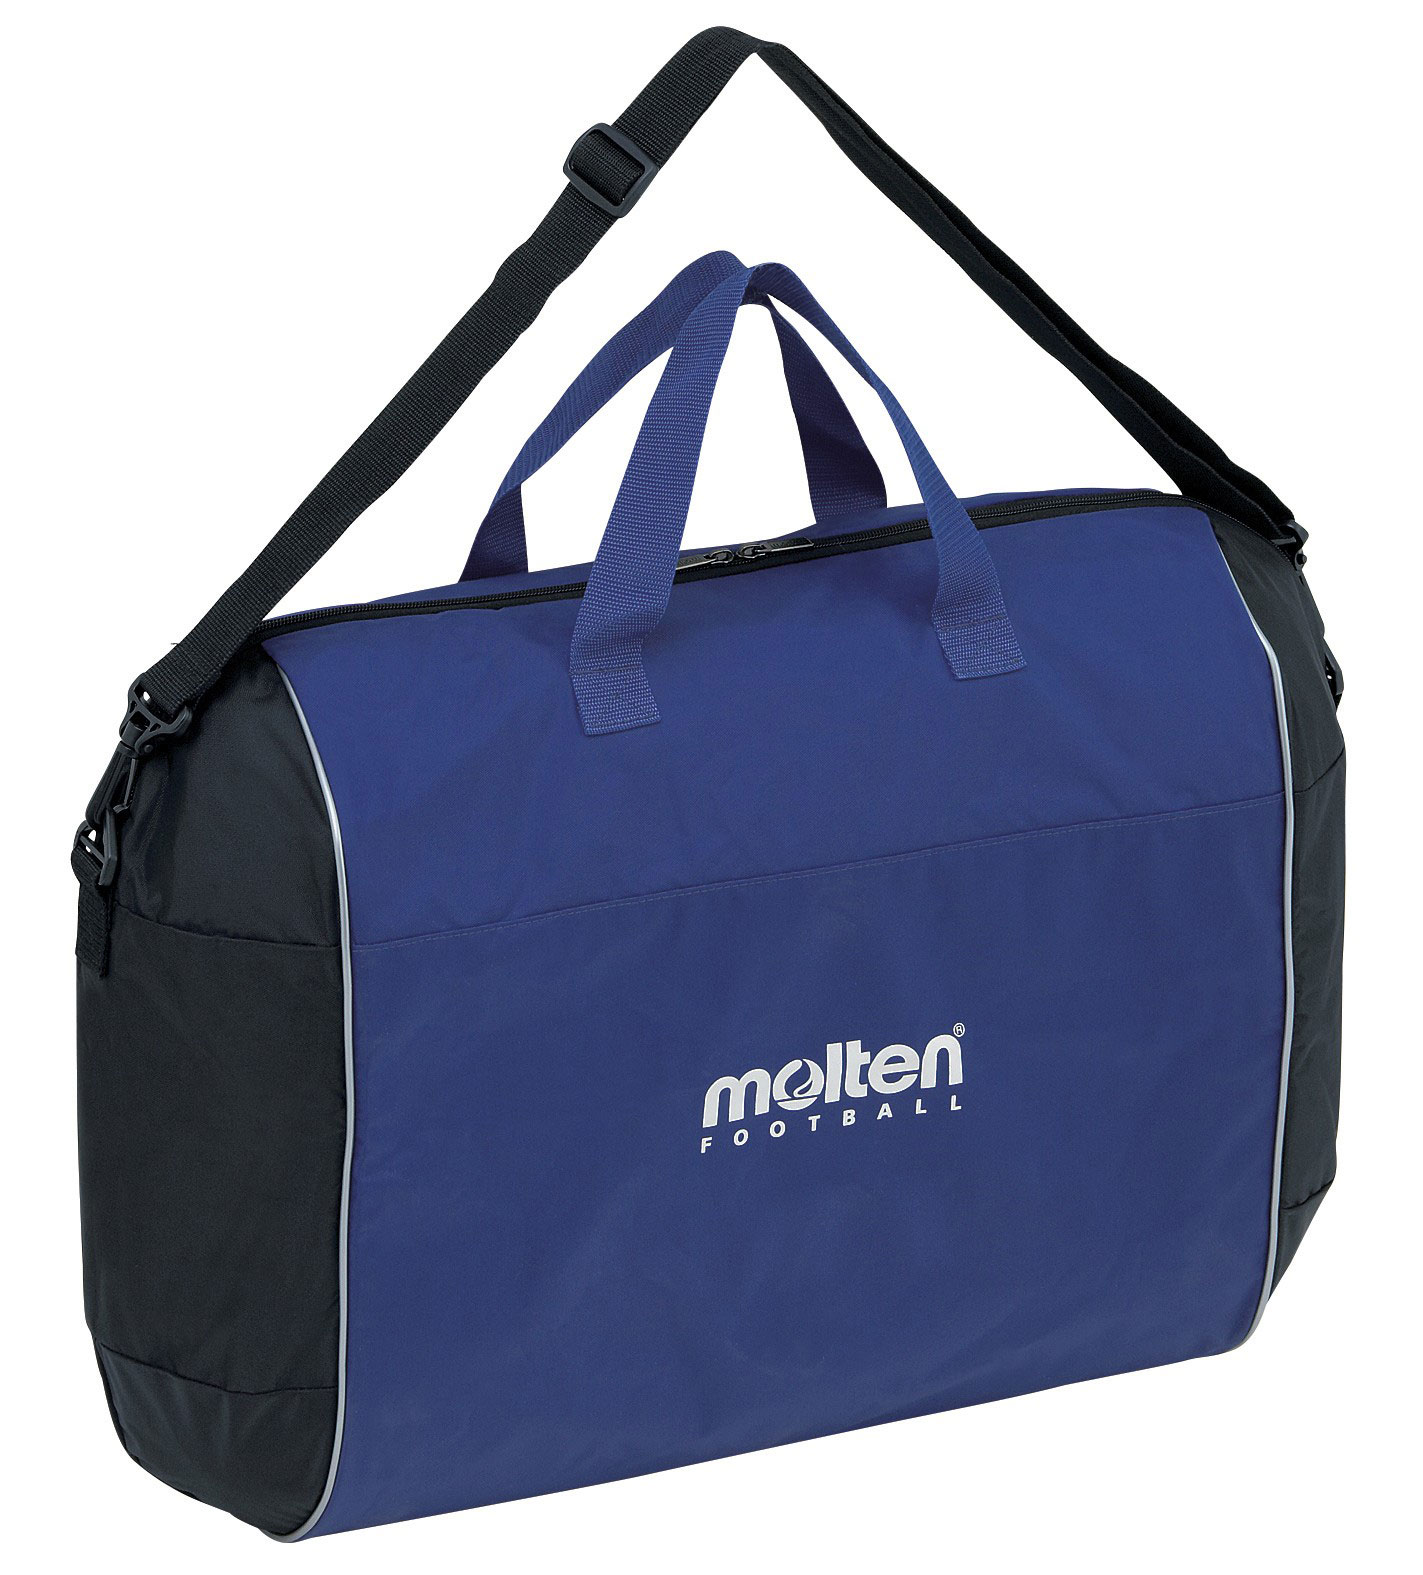 MOLTEN FOOTBALL CARRYING BAG